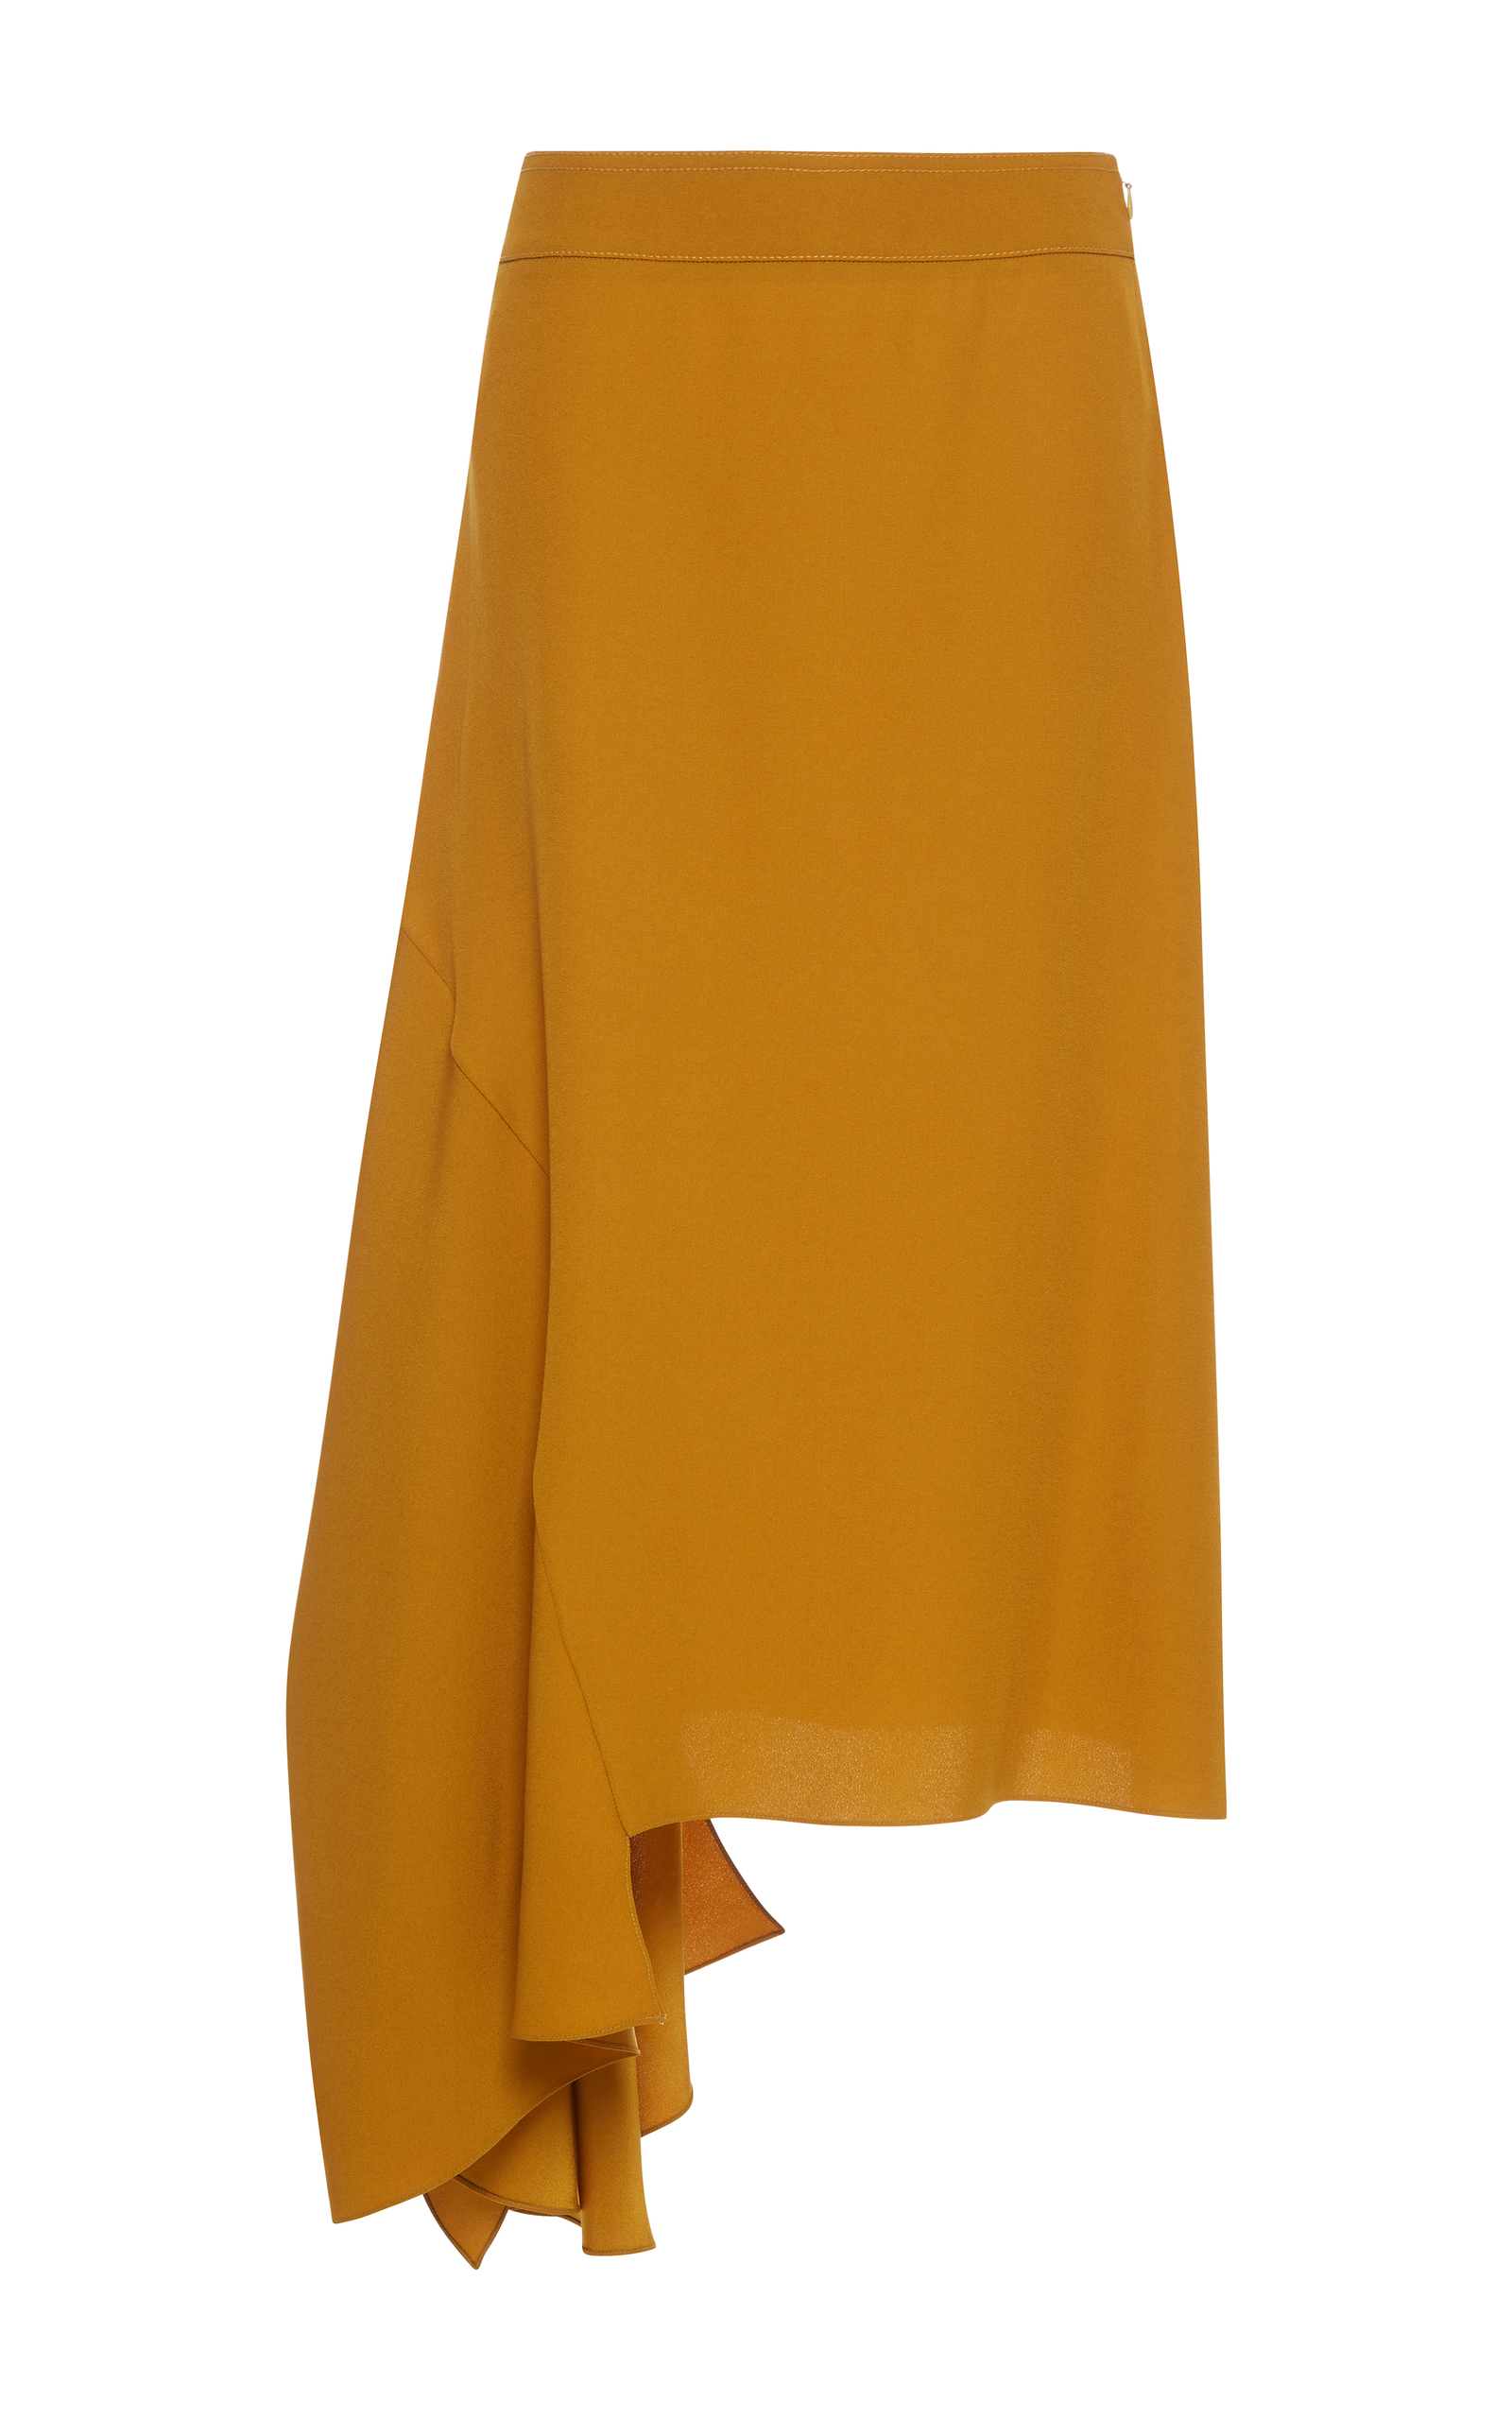 Marni Asymmetrical Midi Skirt Clearance Store Purchase Sale Online Cheap Sale Fashion Style Sale Factory Outlet Y1MBKP2ZO